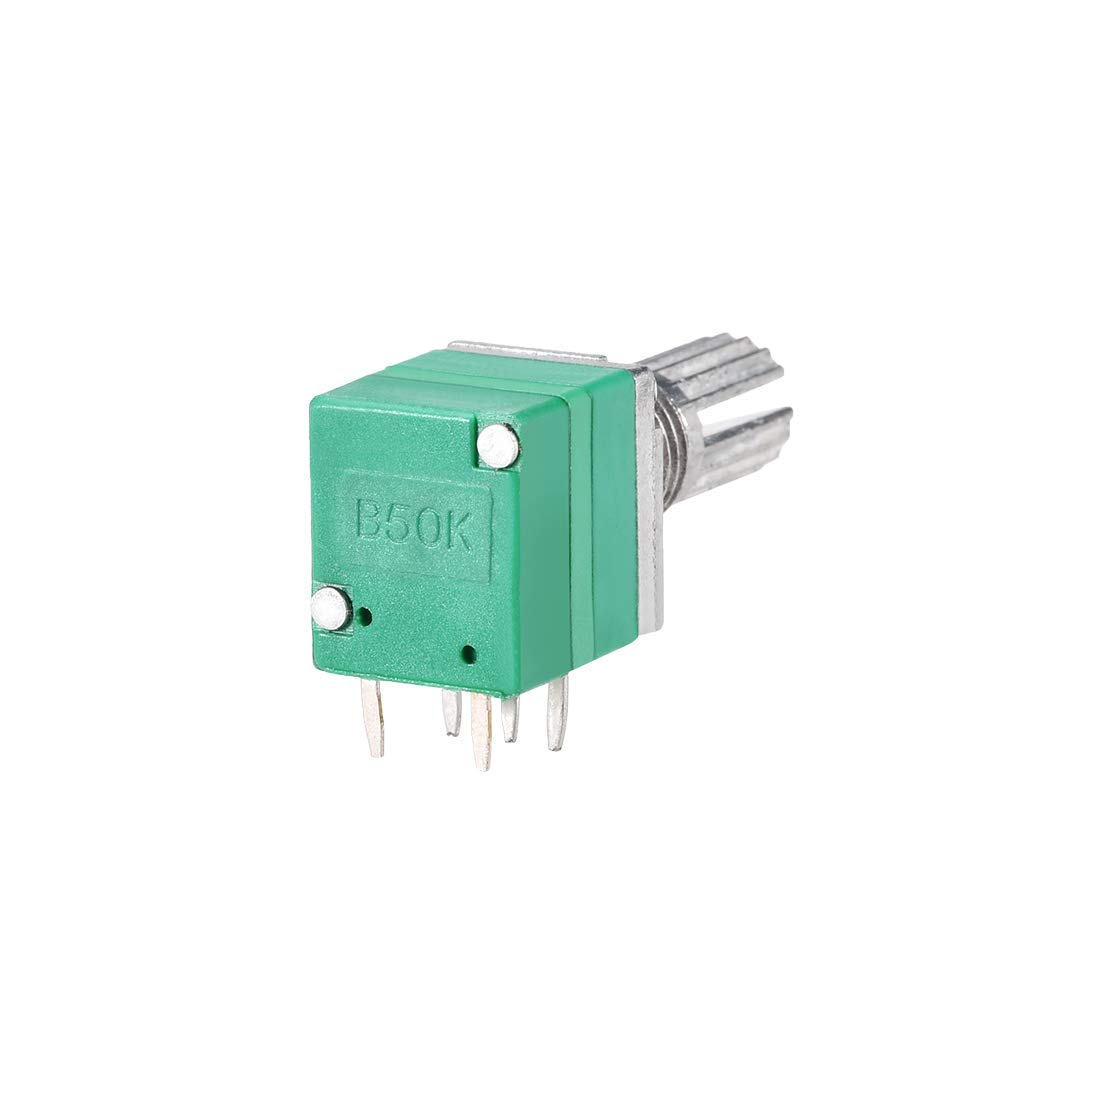 uxcell Potentiometer with Switch B50K Ohm Variable Resistors Single Turn Rotary Carbon Film Taper RV097NS 5pcs